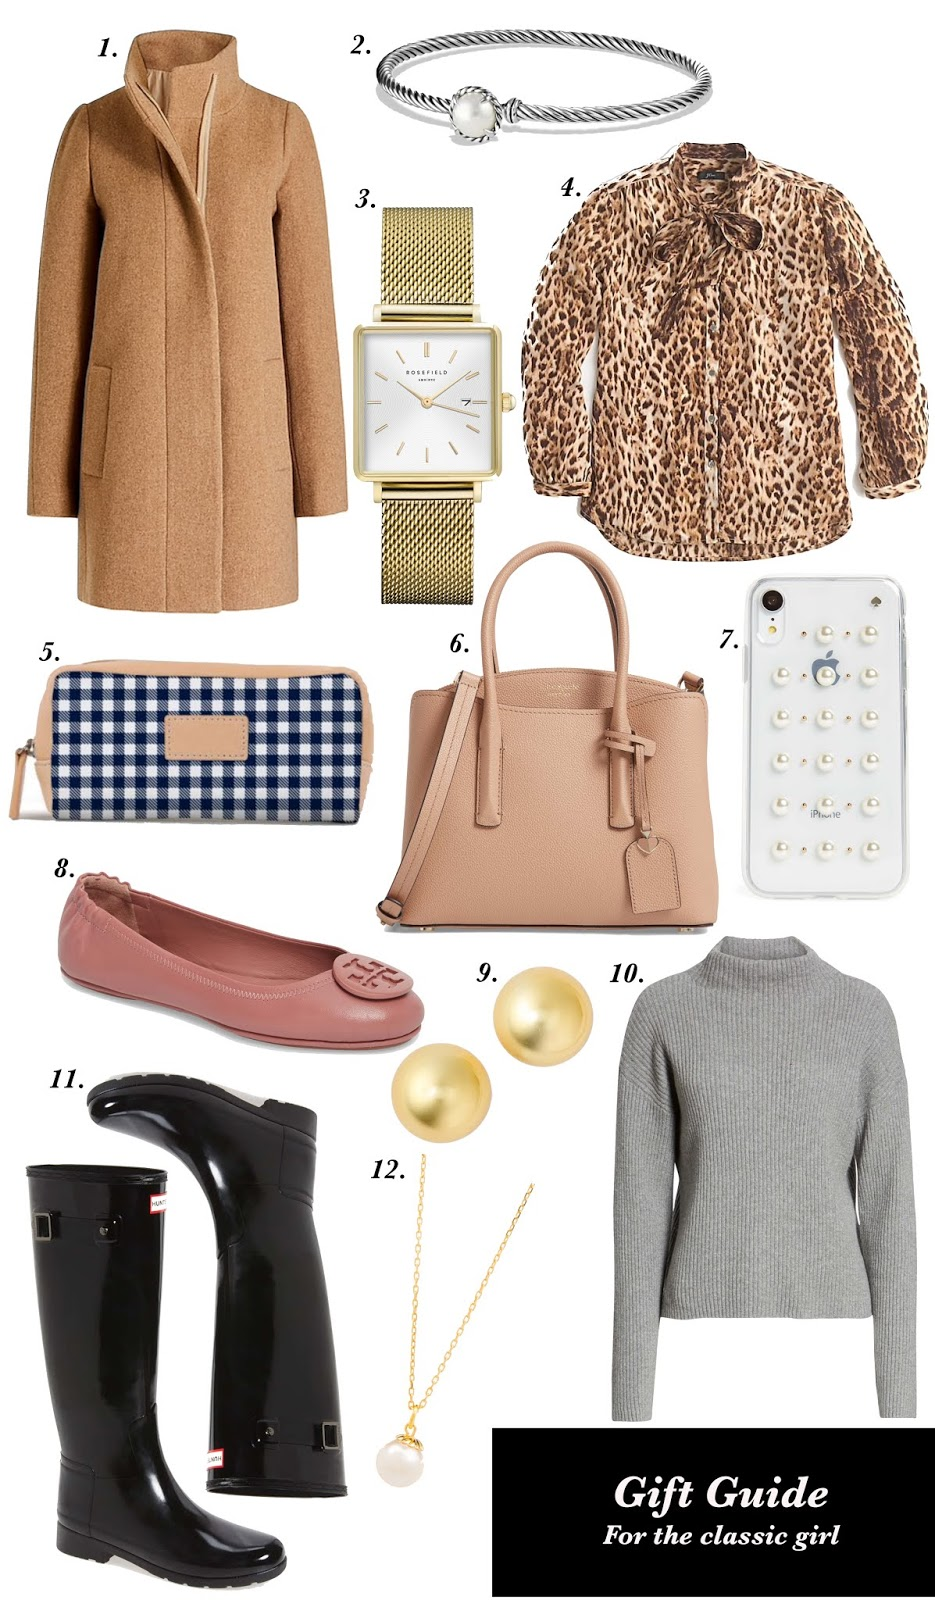 Gift Guide for the Classic Girl - Something Delightful Blog